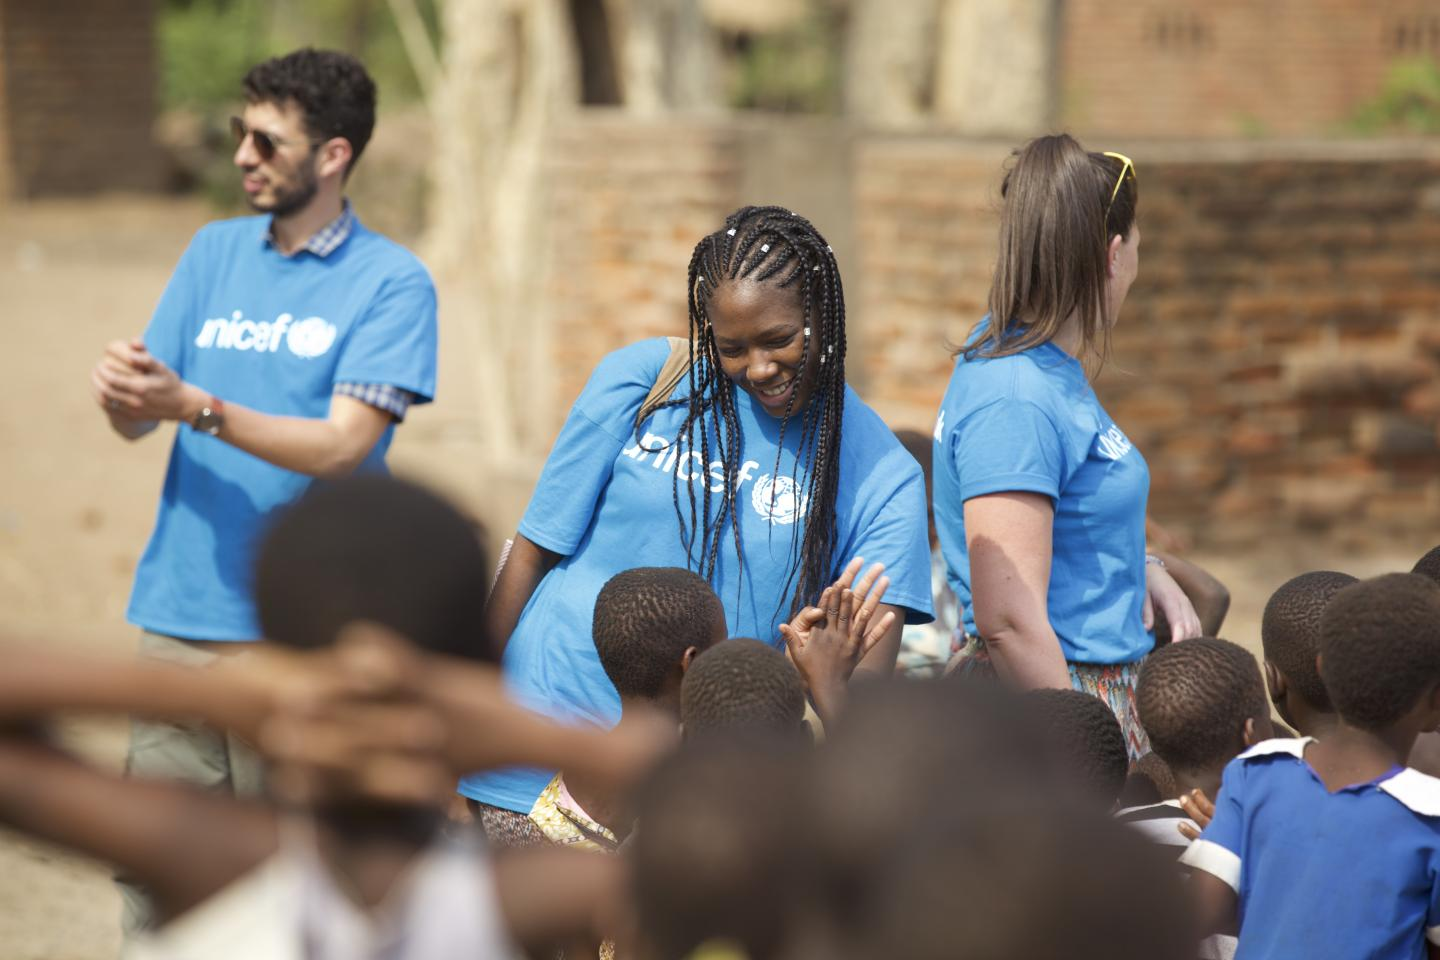 Arm's Kate Kallot shares light moments with children in Chikwawa, Malawi